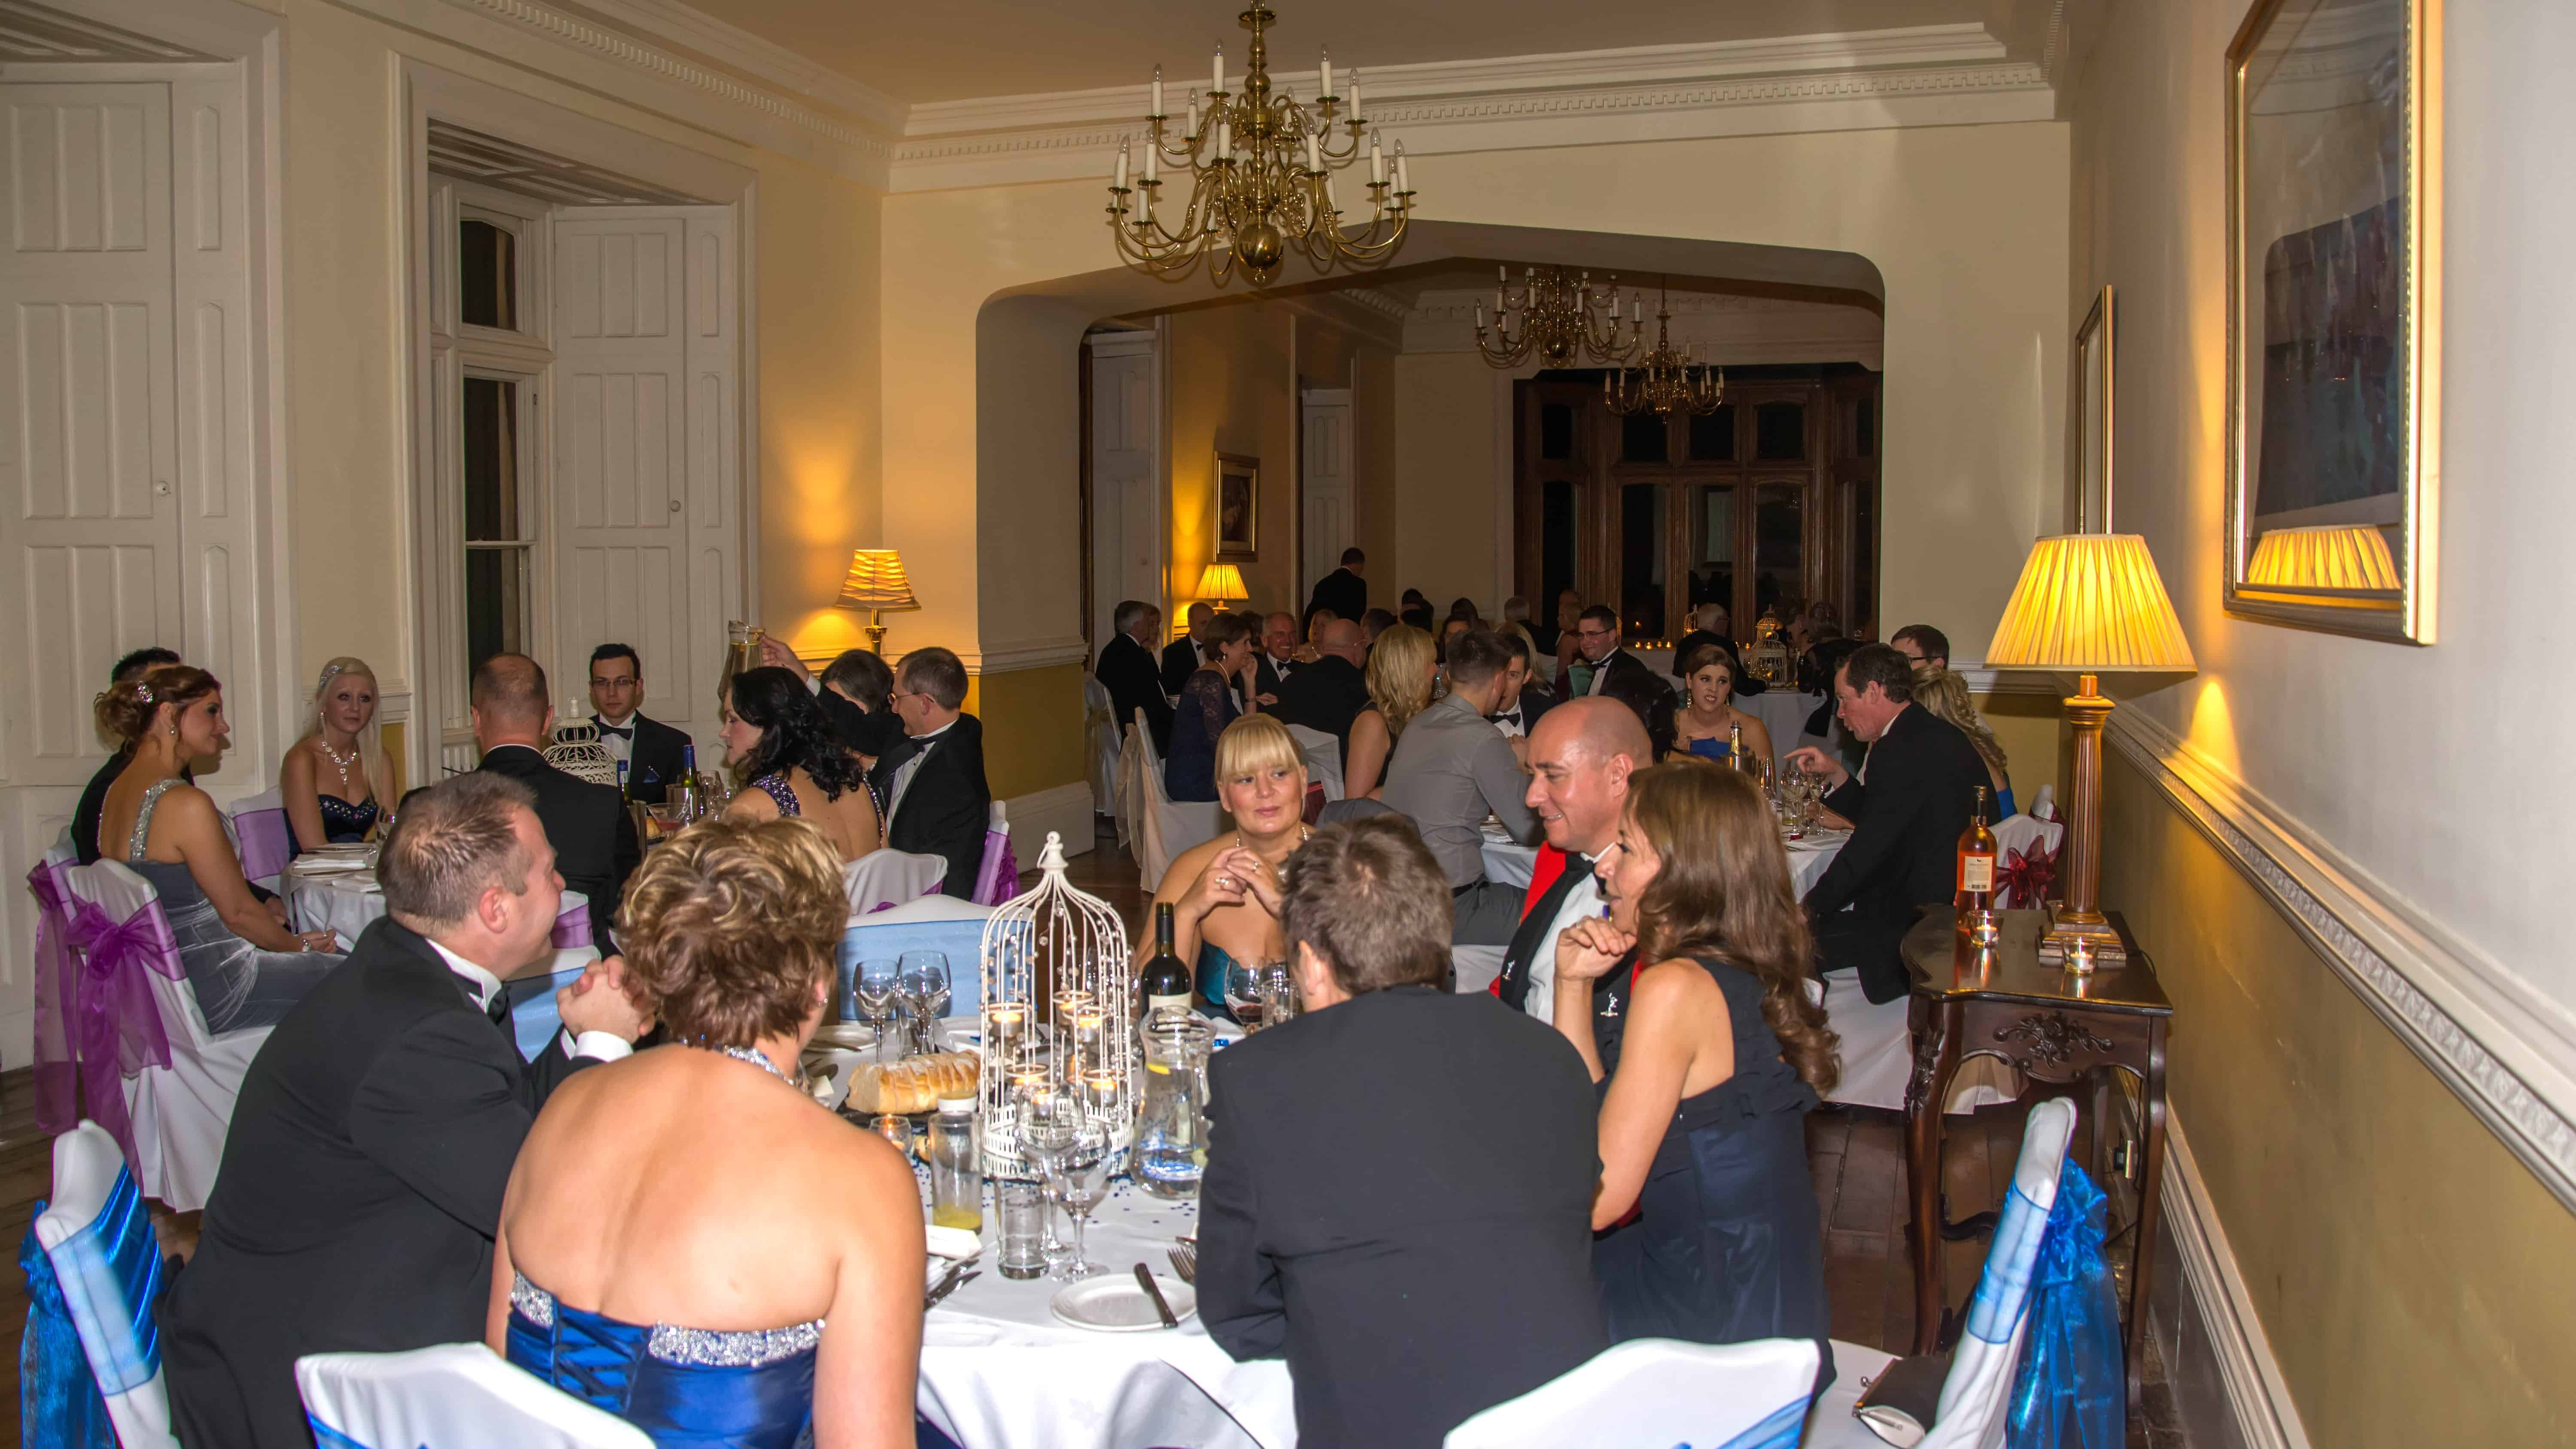 St Audries Park Candlelit Ball - Seated Guests